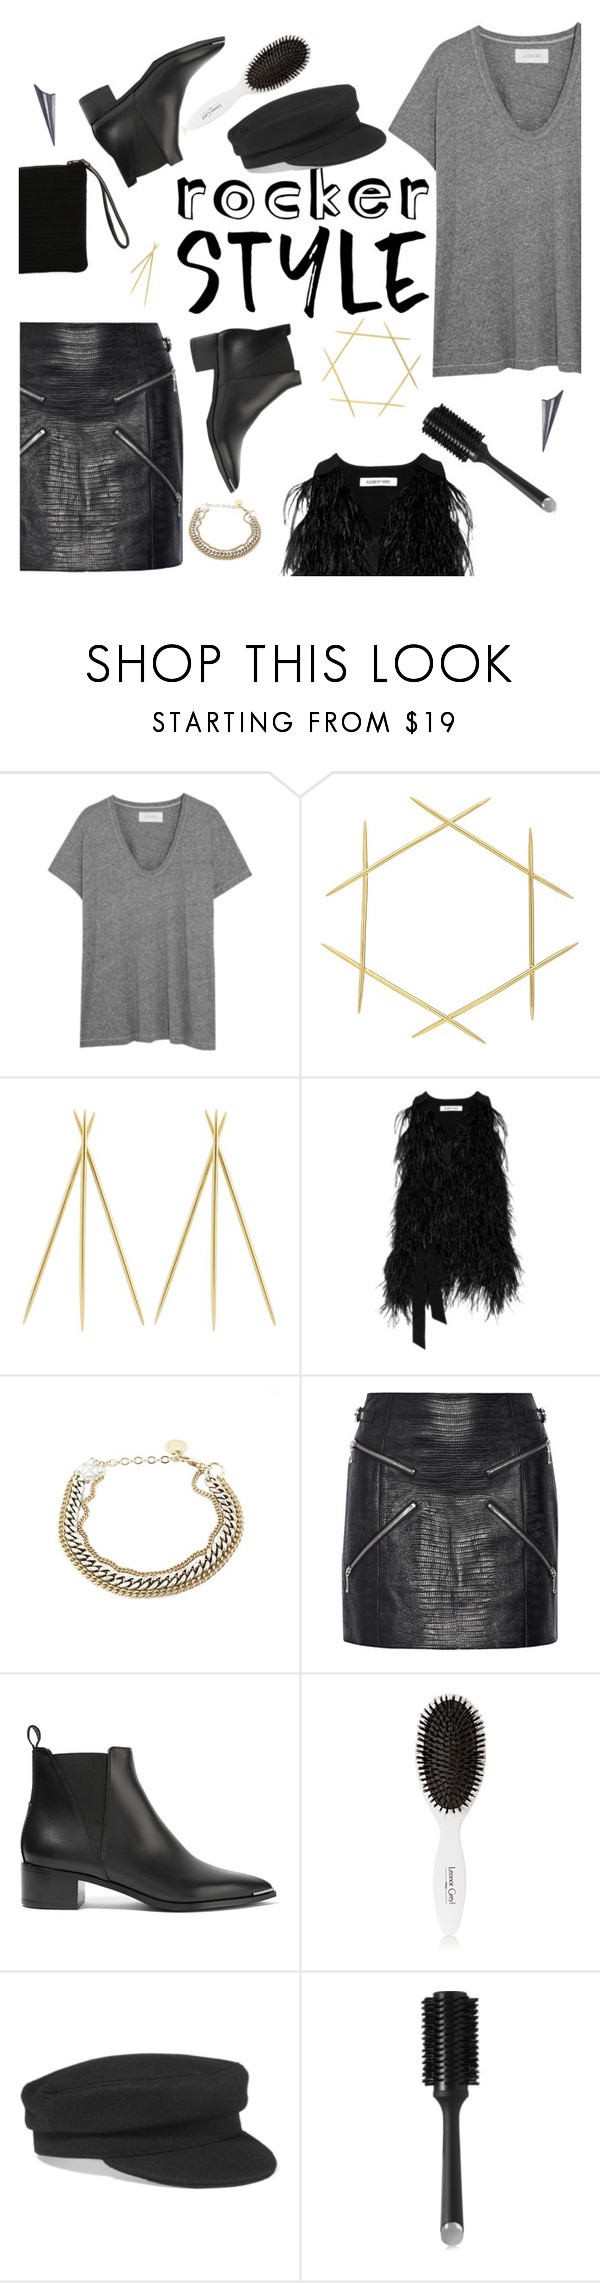 """""""Rocker Chic"""" by thepommier ❤ liked on Polyvore featuring The Great, Elizabeth and James, Alexander Wang, Acne Studios, Leonor Greyl, Étoile Isabel Marant, GHD, rockerchic and rockerstyle"""